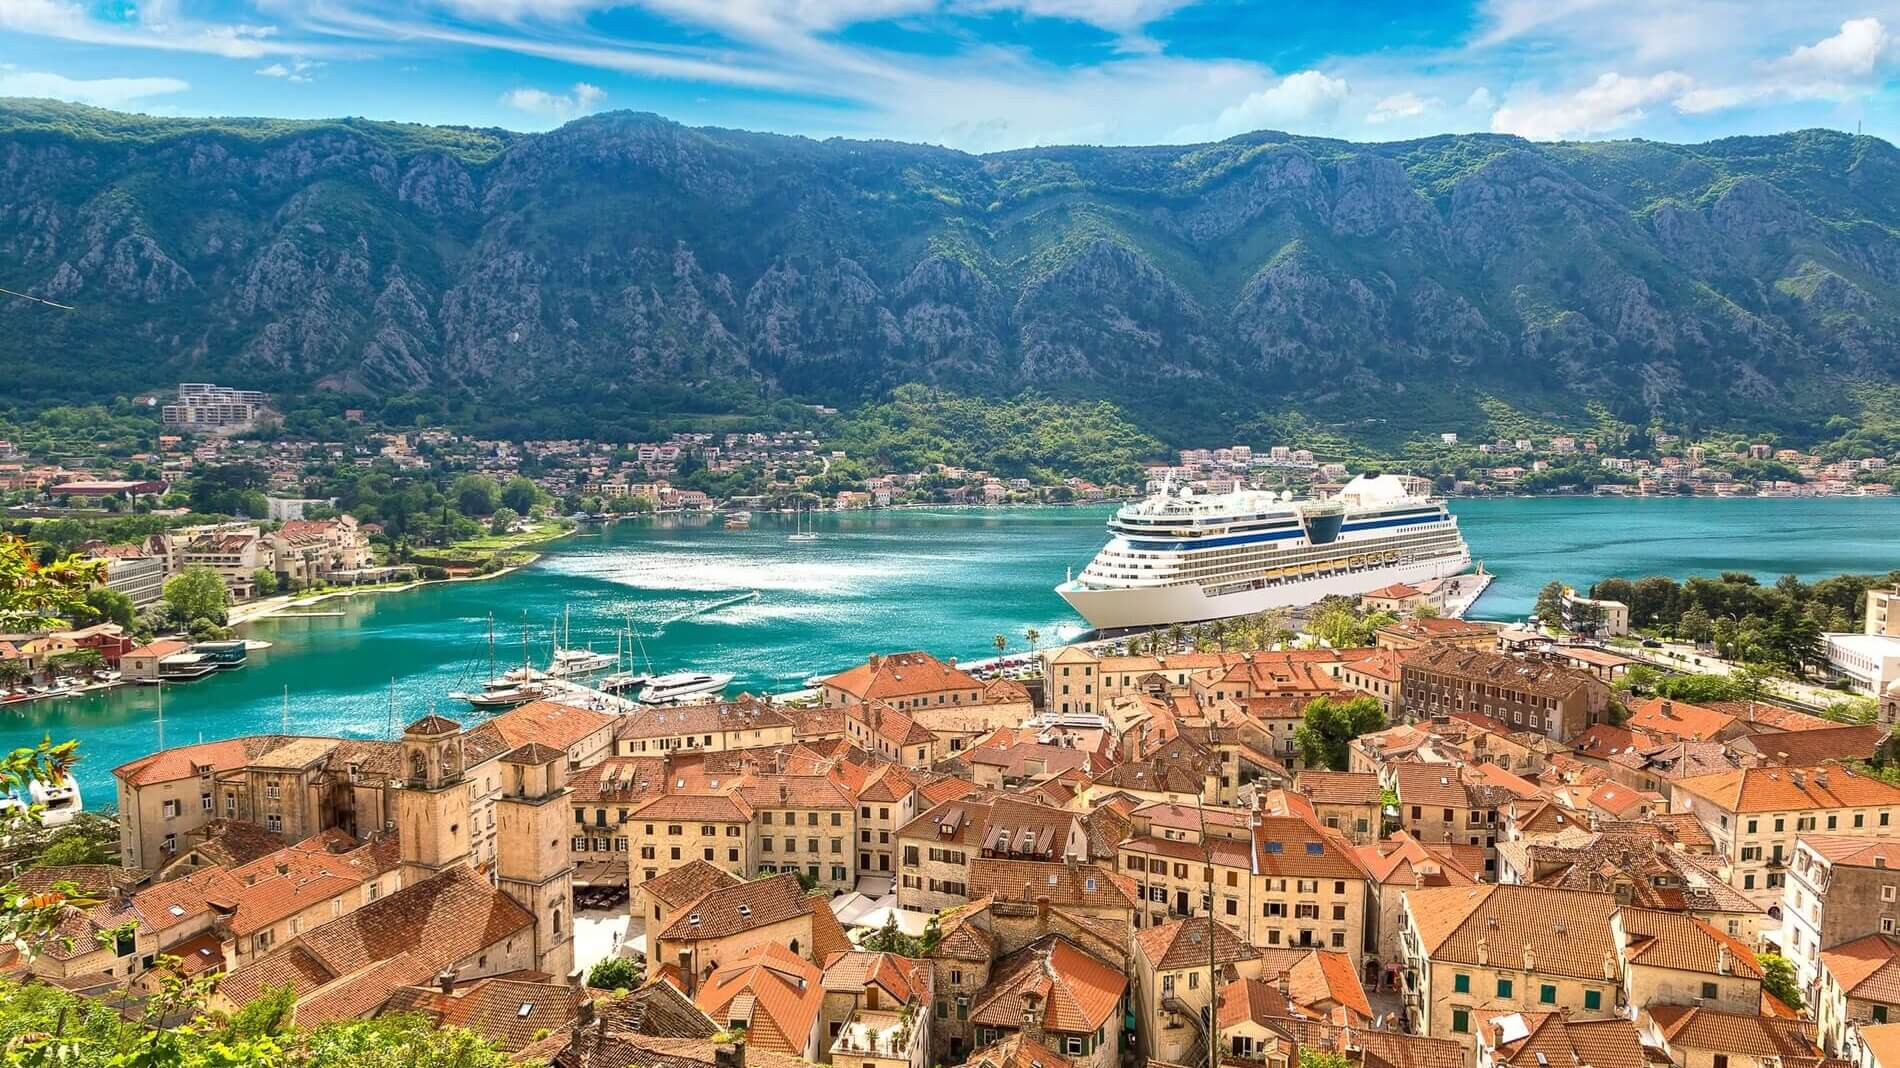 Kotor - Adriatic Sea | Croatia Cruise Croatia Cruise